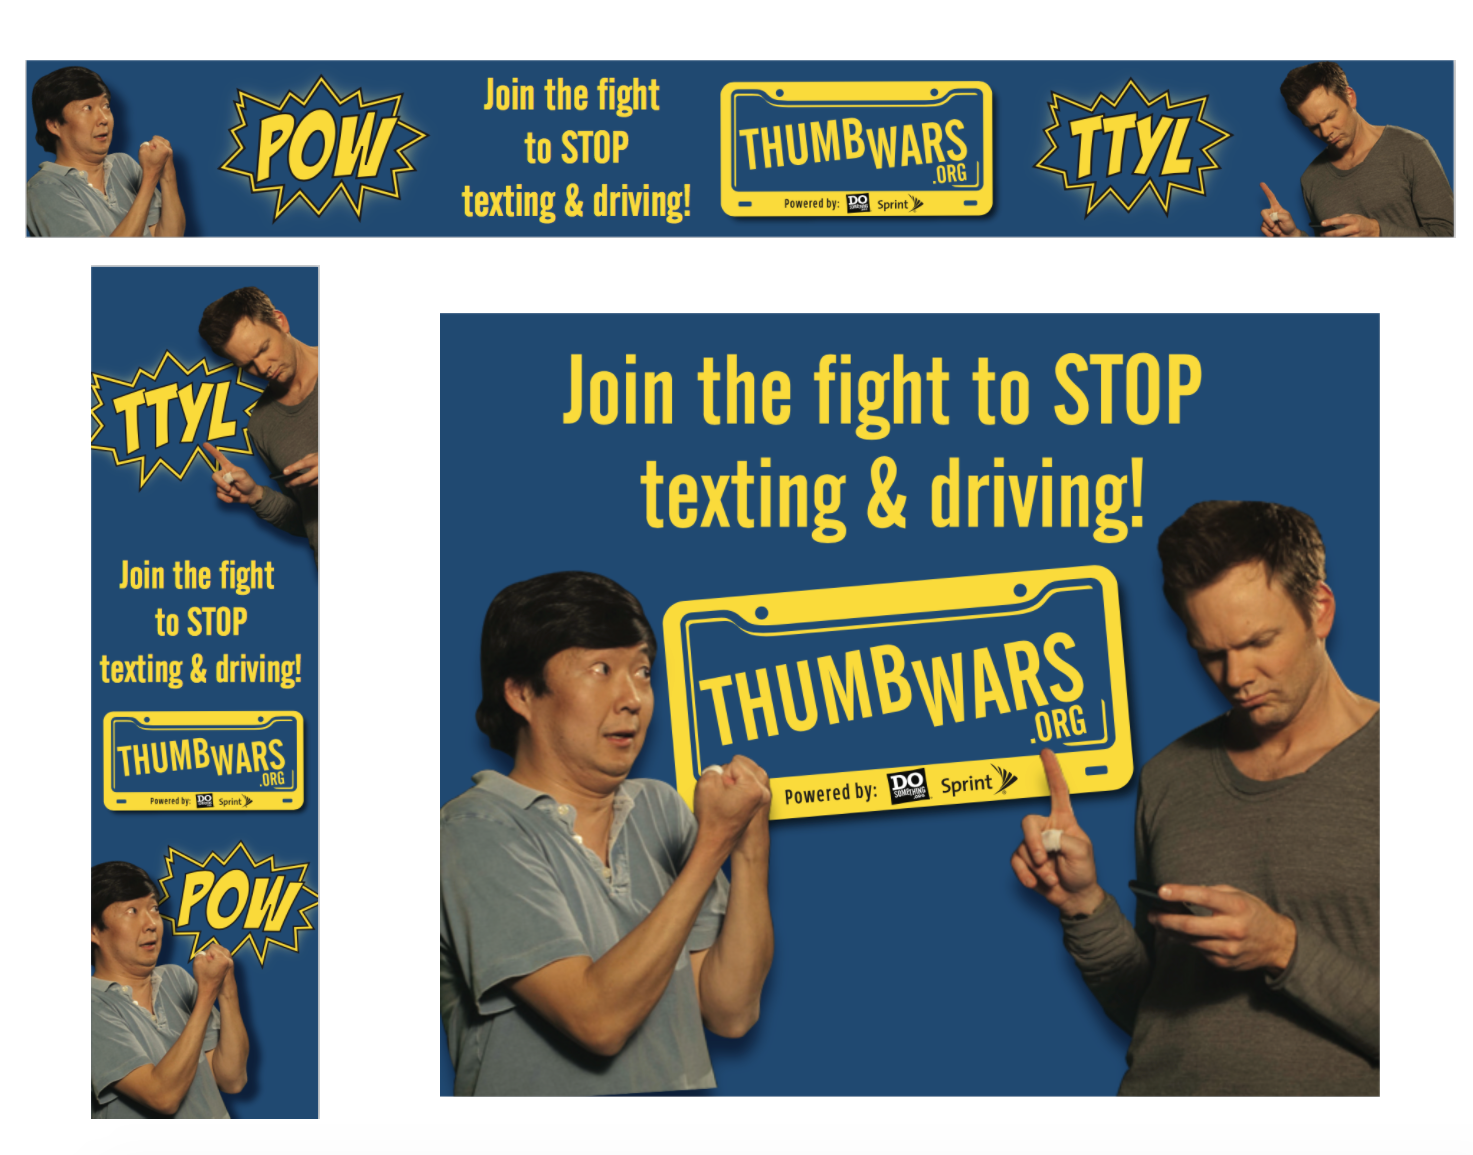 """""""Thumb Wars"""" anti-texting and driving campaign web ads featuring celebrity partners Joe McHale and Ken Jeong. Campaign was sponsored by Sprint."""